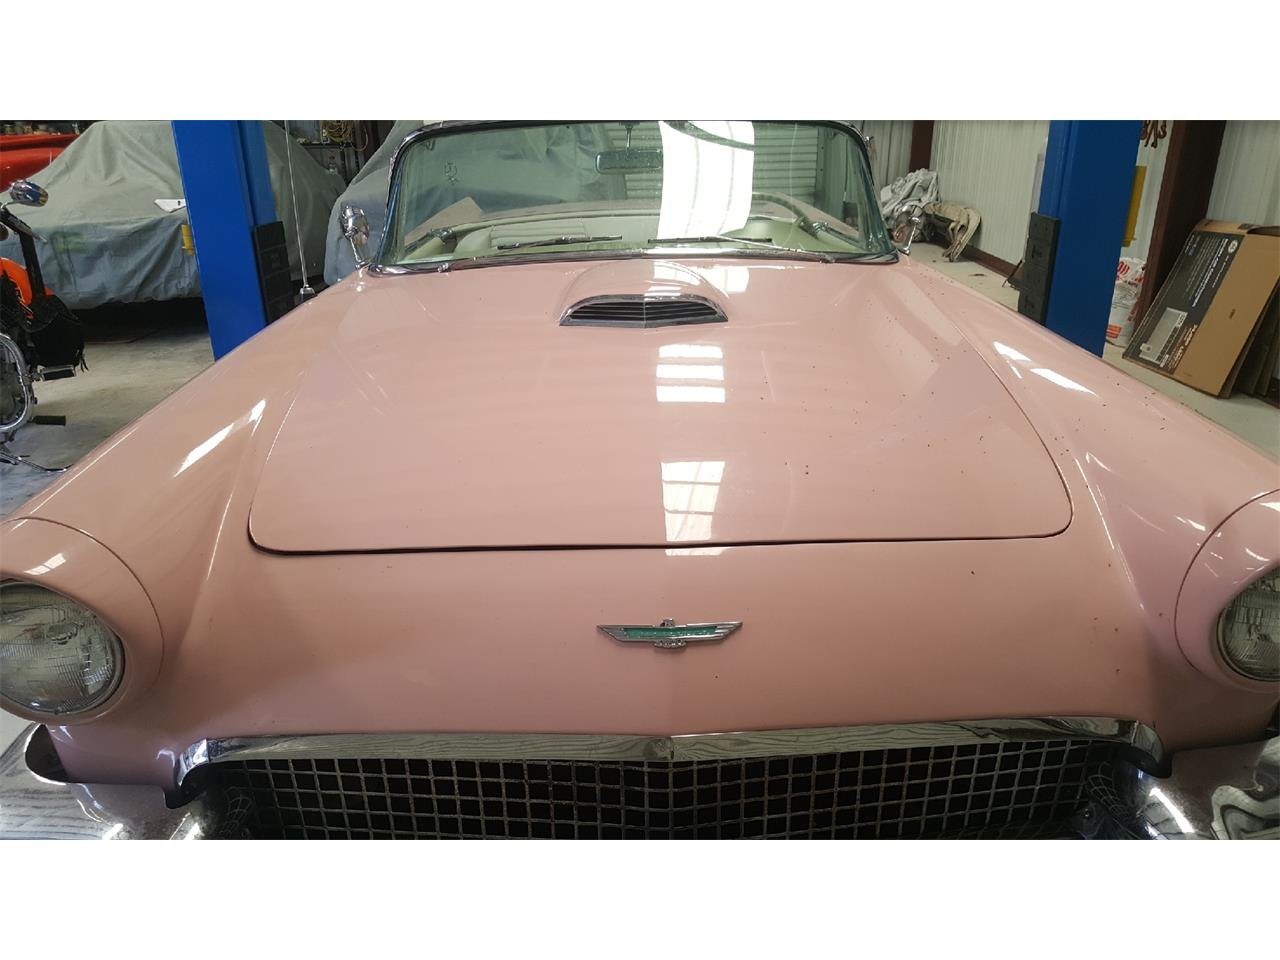 1957 Ford Thunderbird for sale in Jensen Beach, FL – photo 4